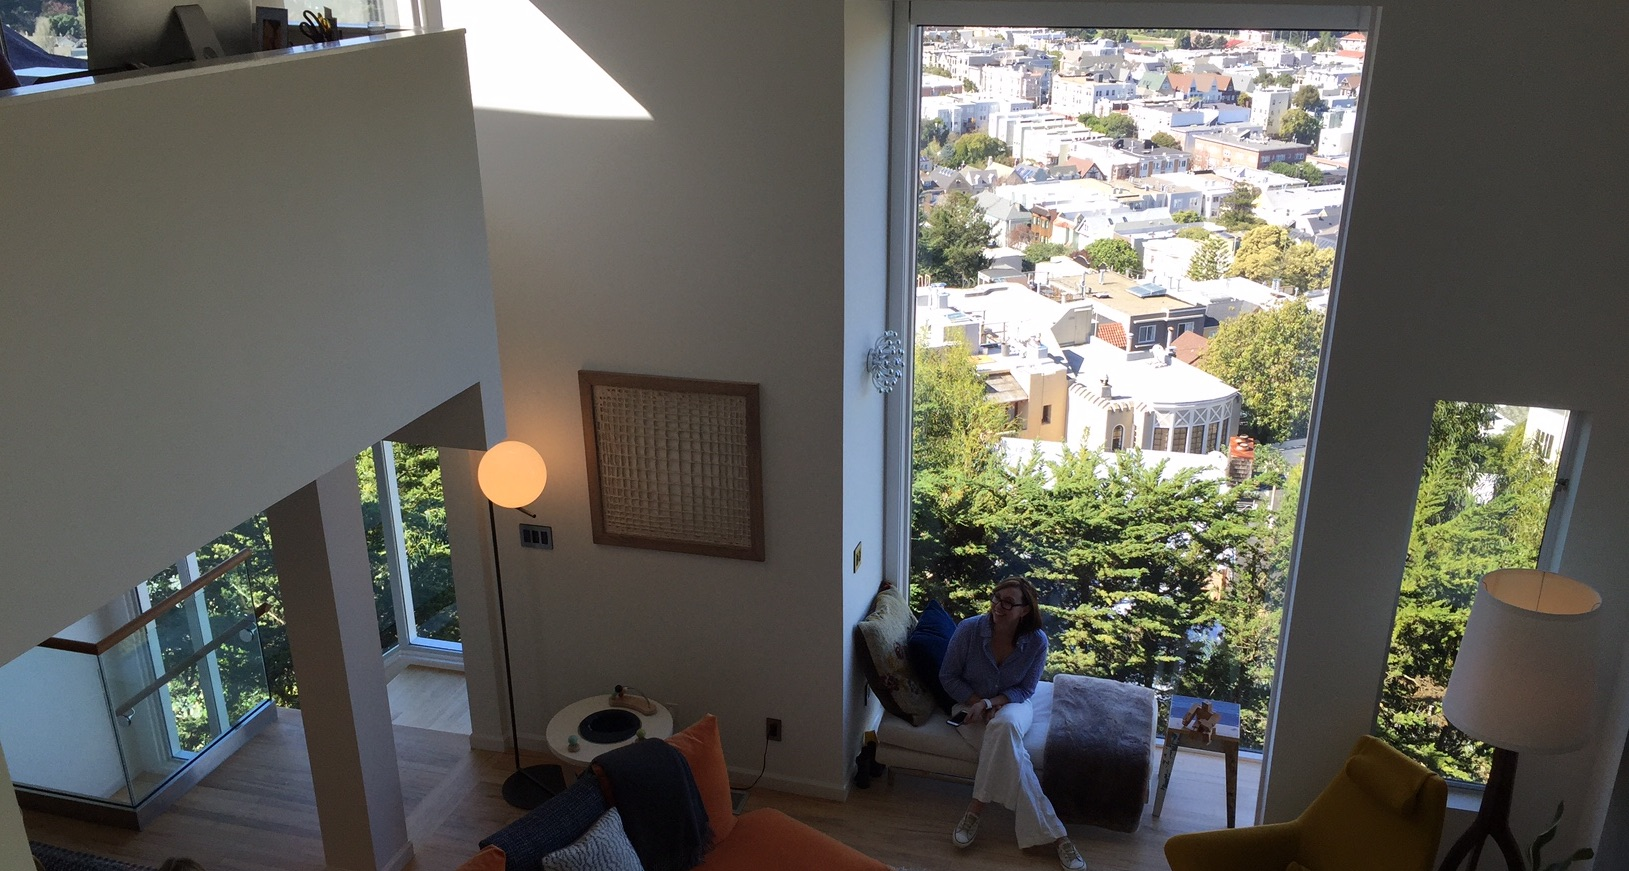 Exquisite Modern View Home in Ashbury Heights – Not On MLS